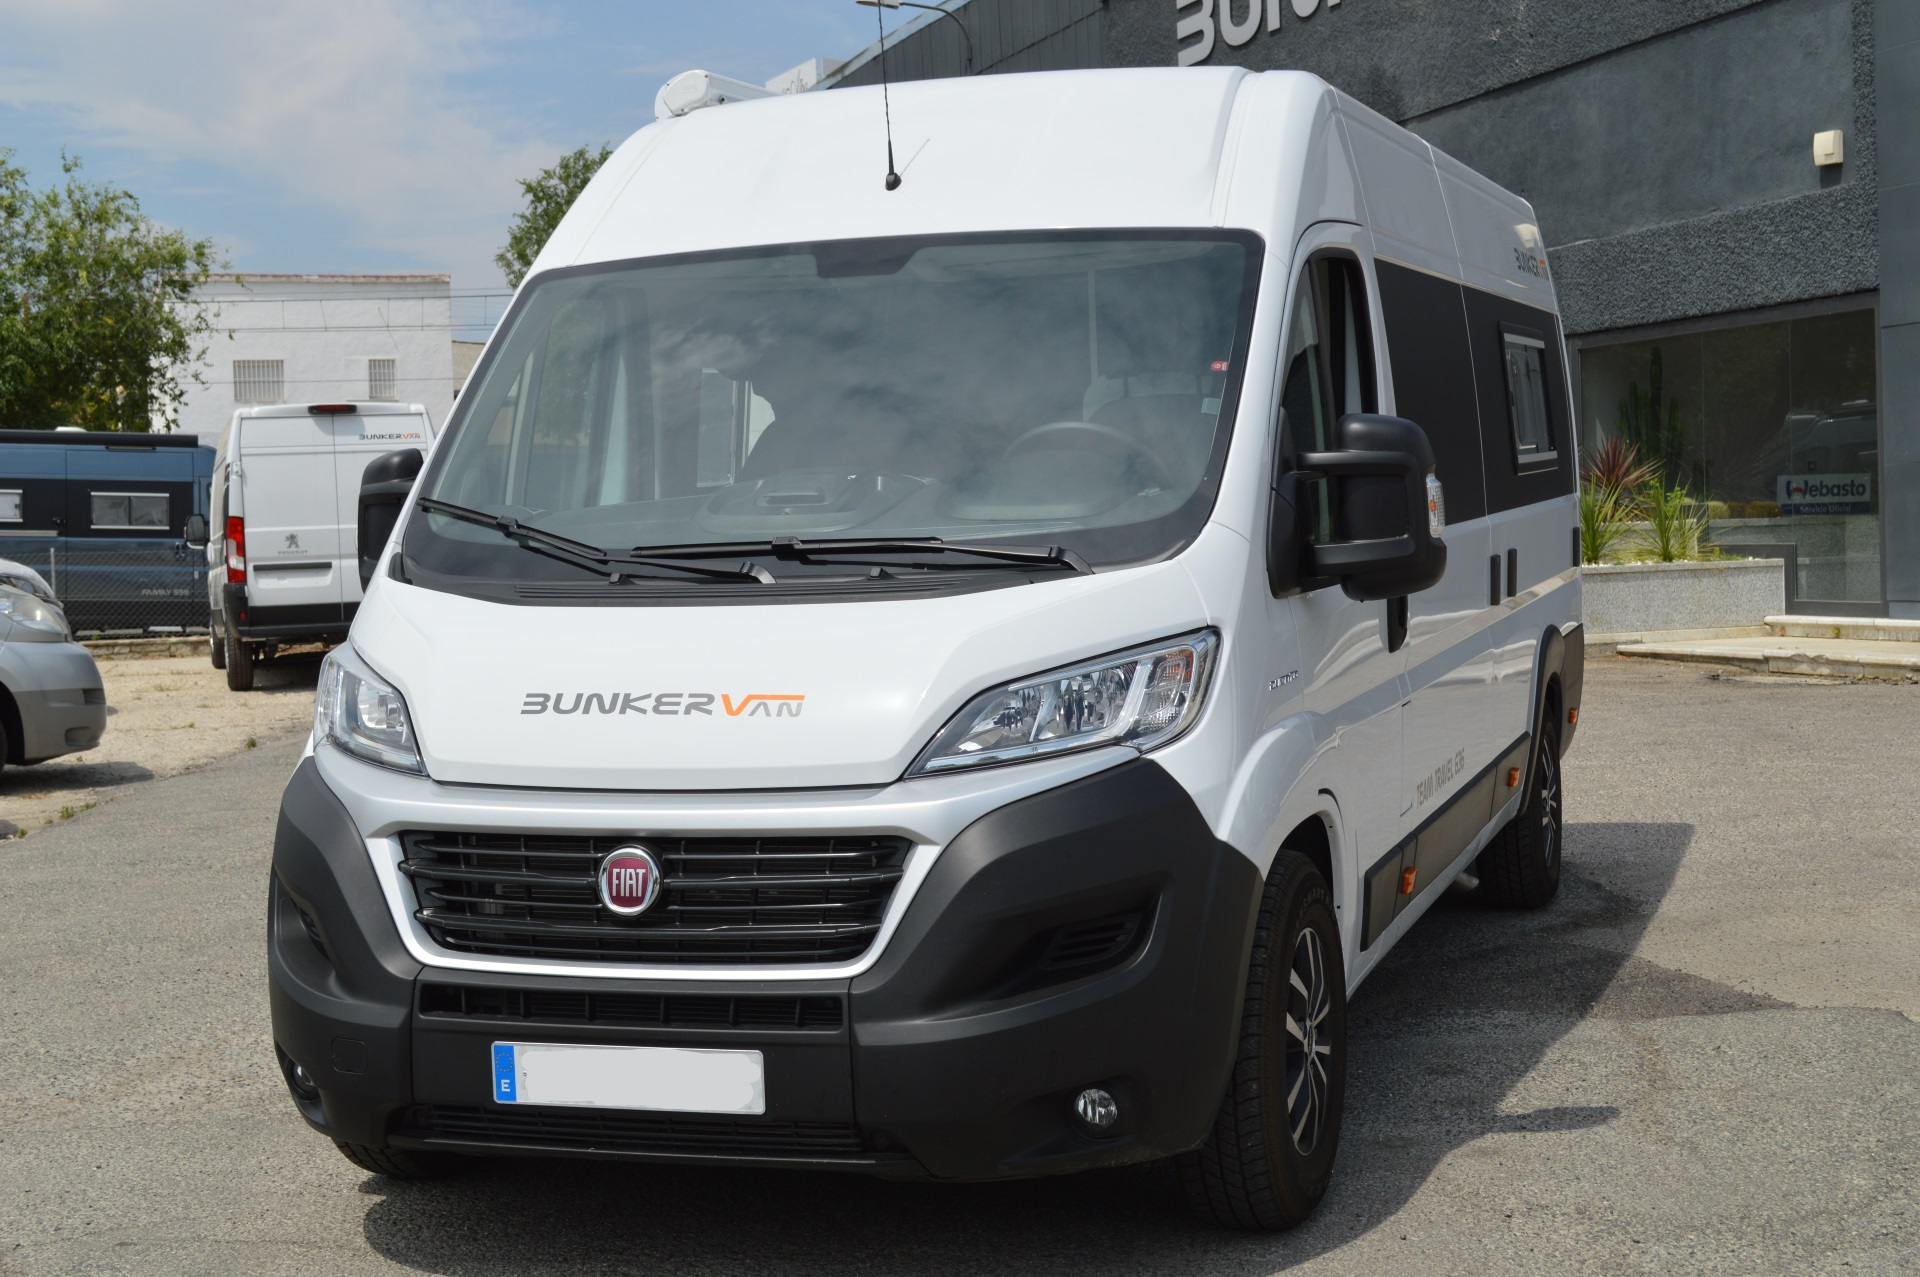 Team Travel 636 L4H2 Fiat Ducato Bunkervan (31)